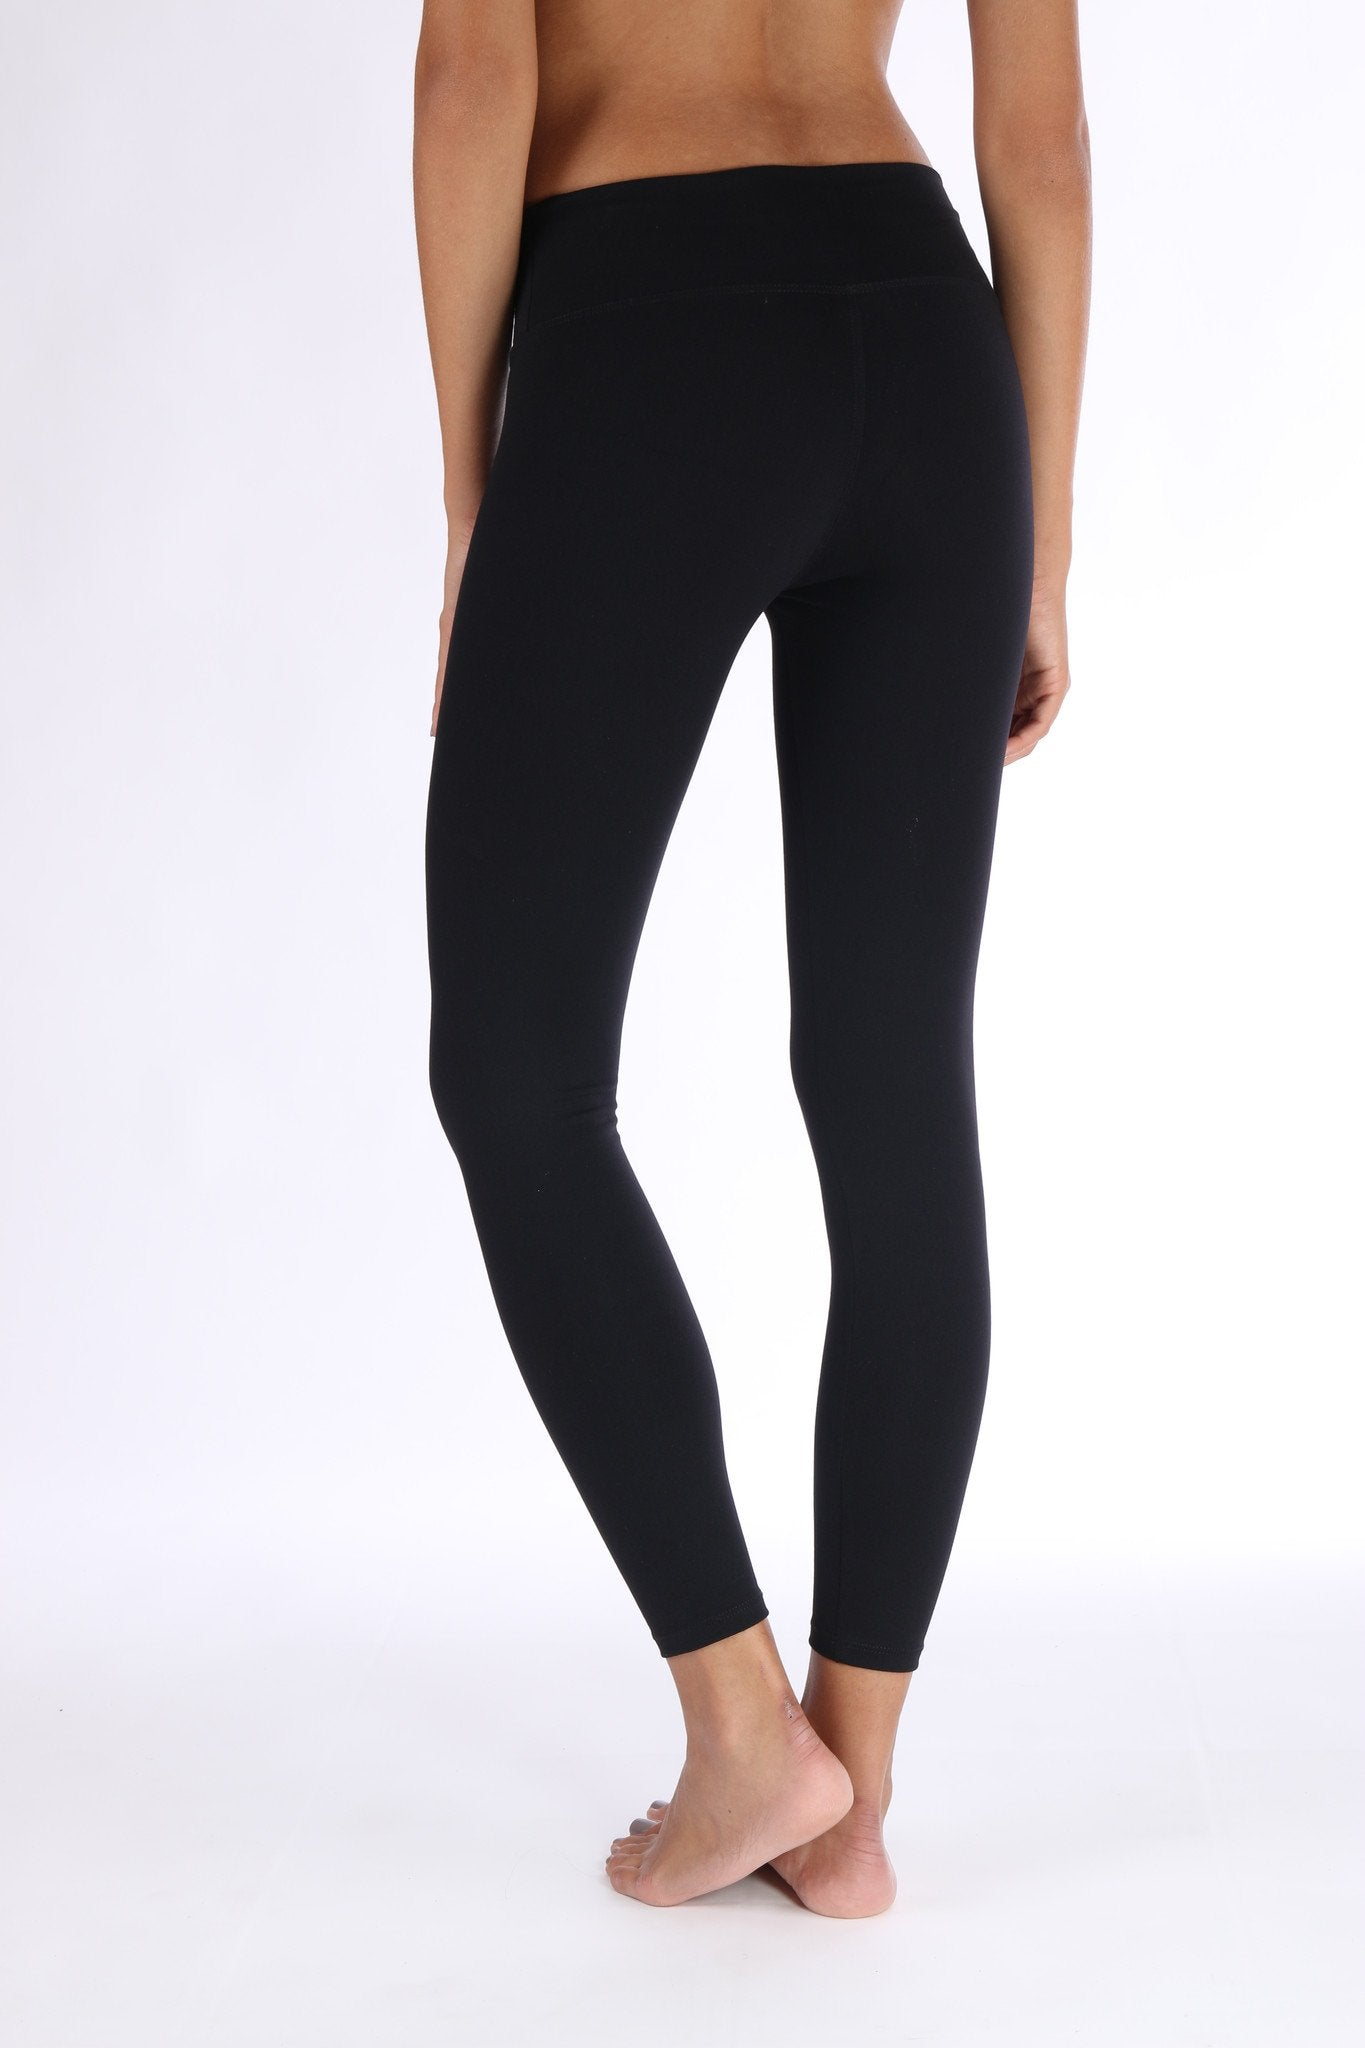 Basic Black Yoga Pants